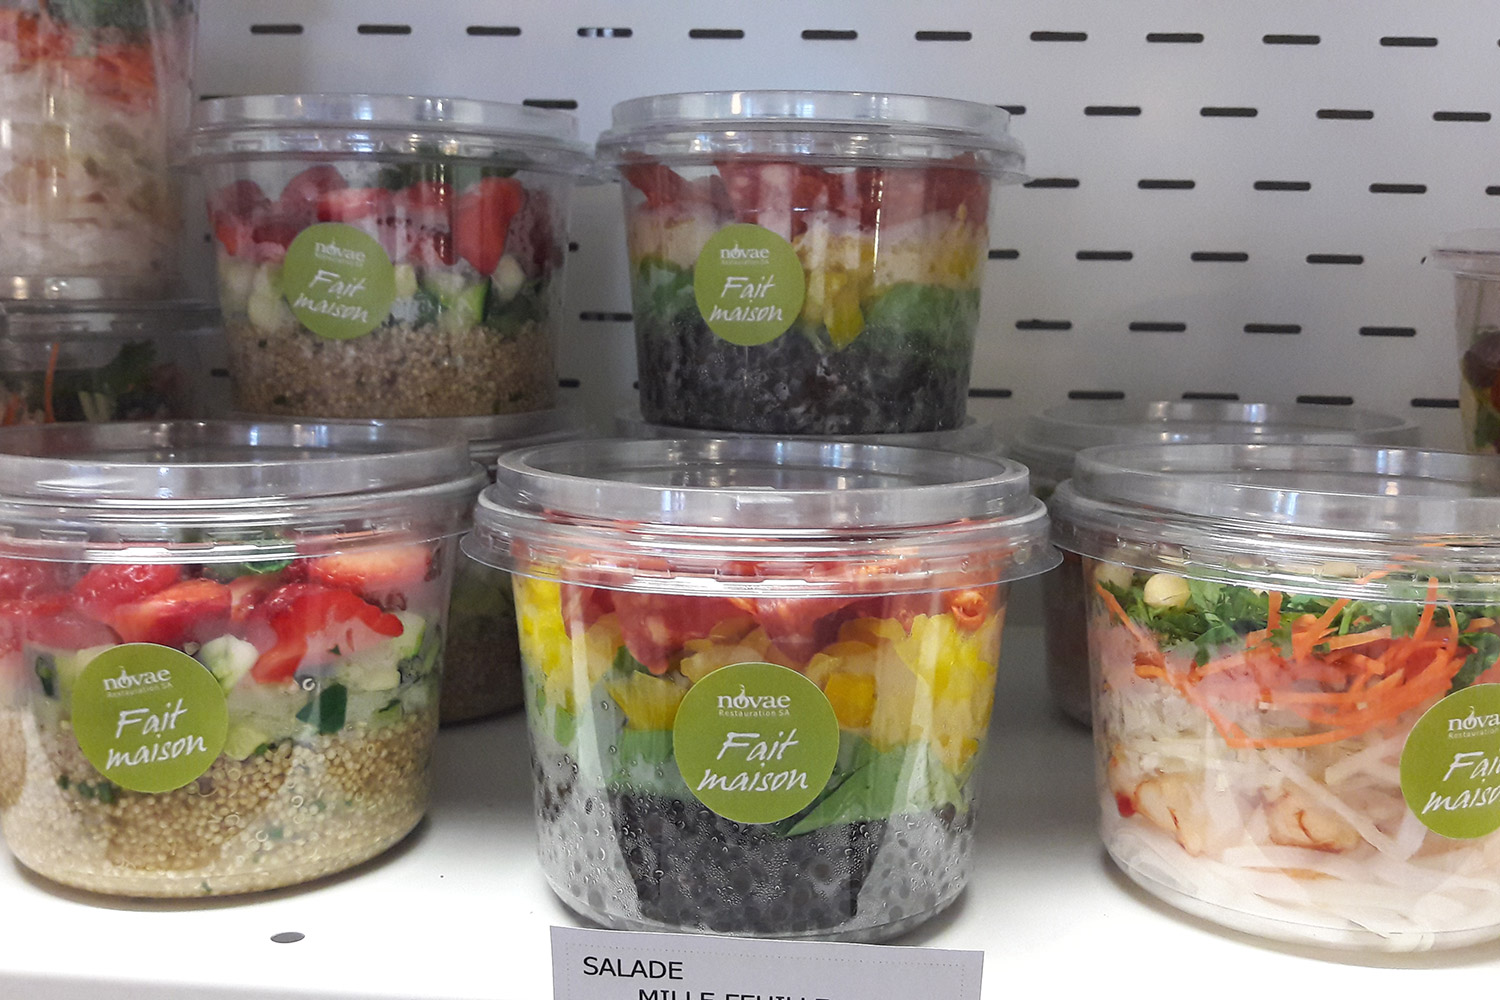 You can also get takeaway salads now!